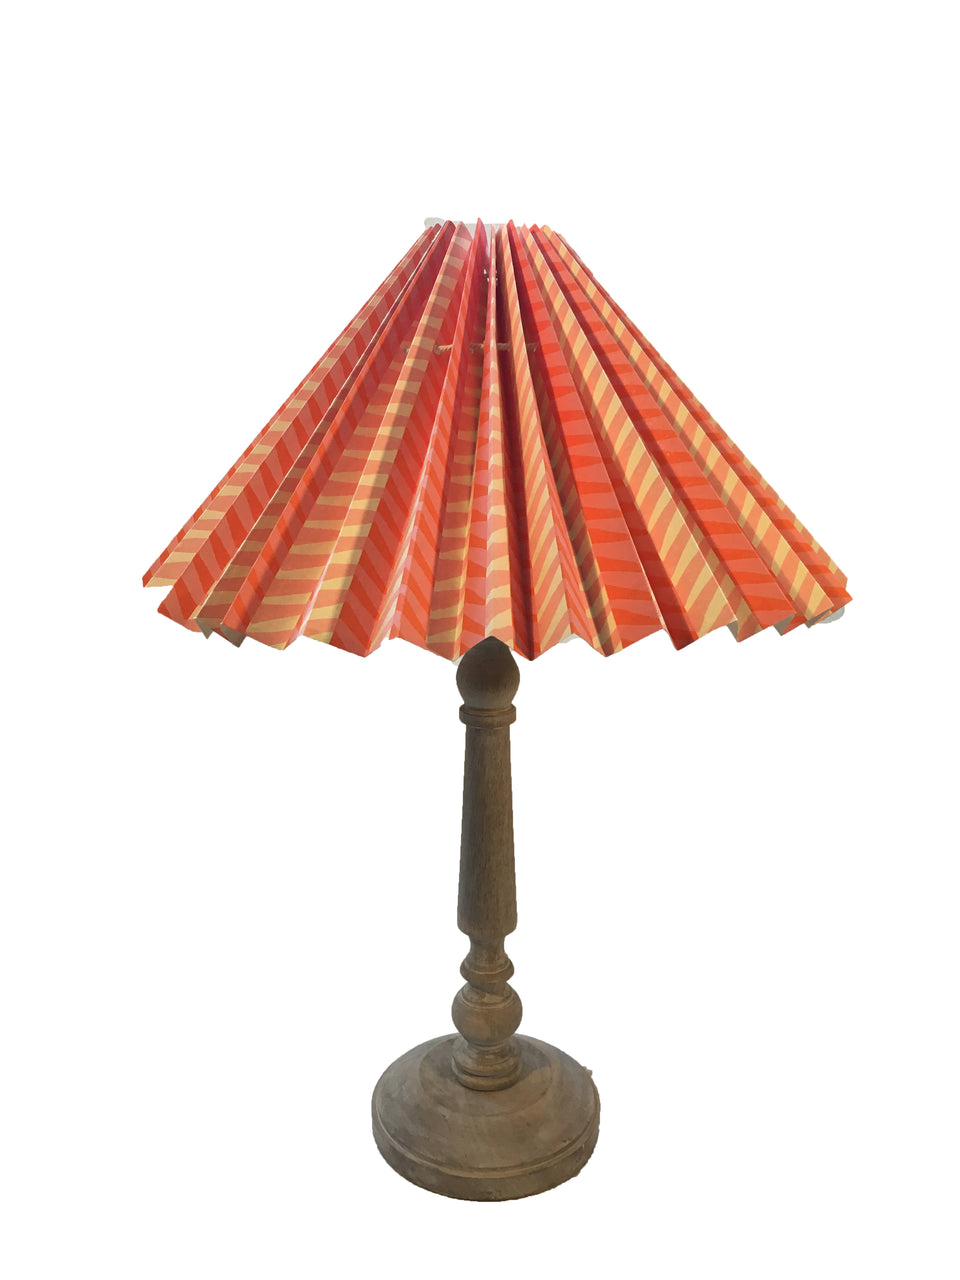 HANDMADE PAPER LAMPSHADE IN ORANGE AND PINK ZIGZAG PATTERN